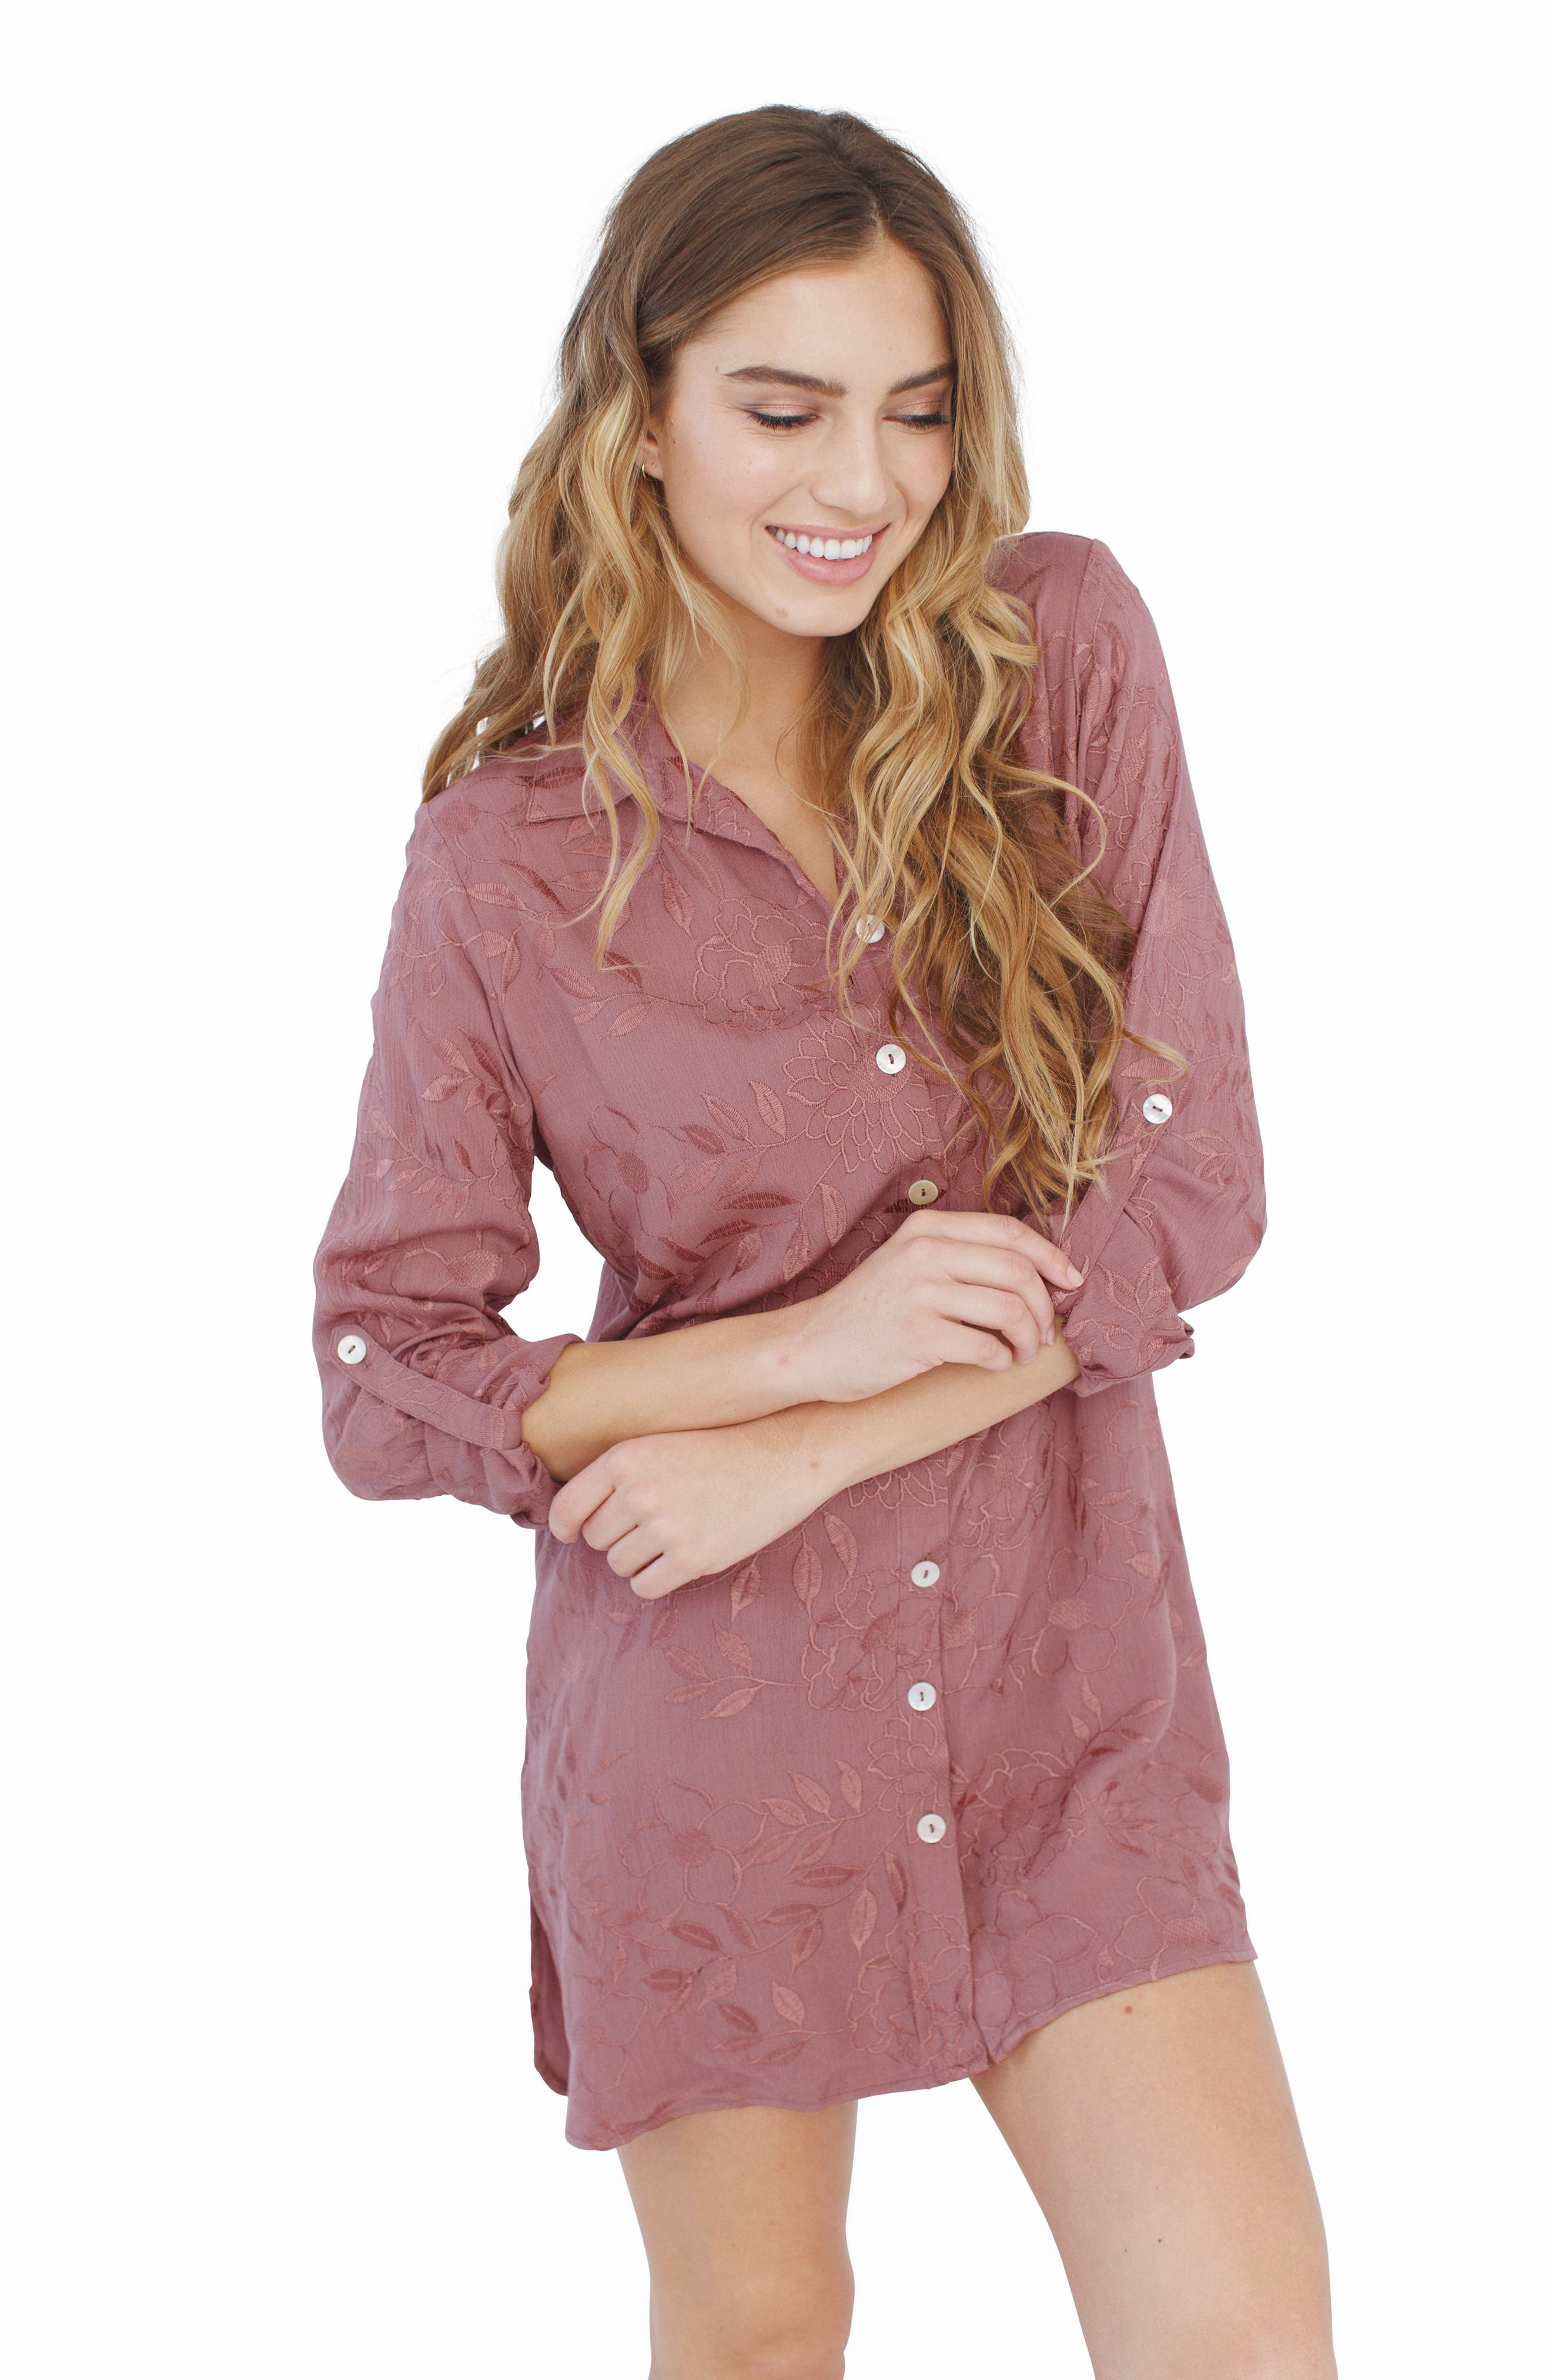 Floral Embroidered Nightshirt,                             Alternate thumbnail 4, color,                             510